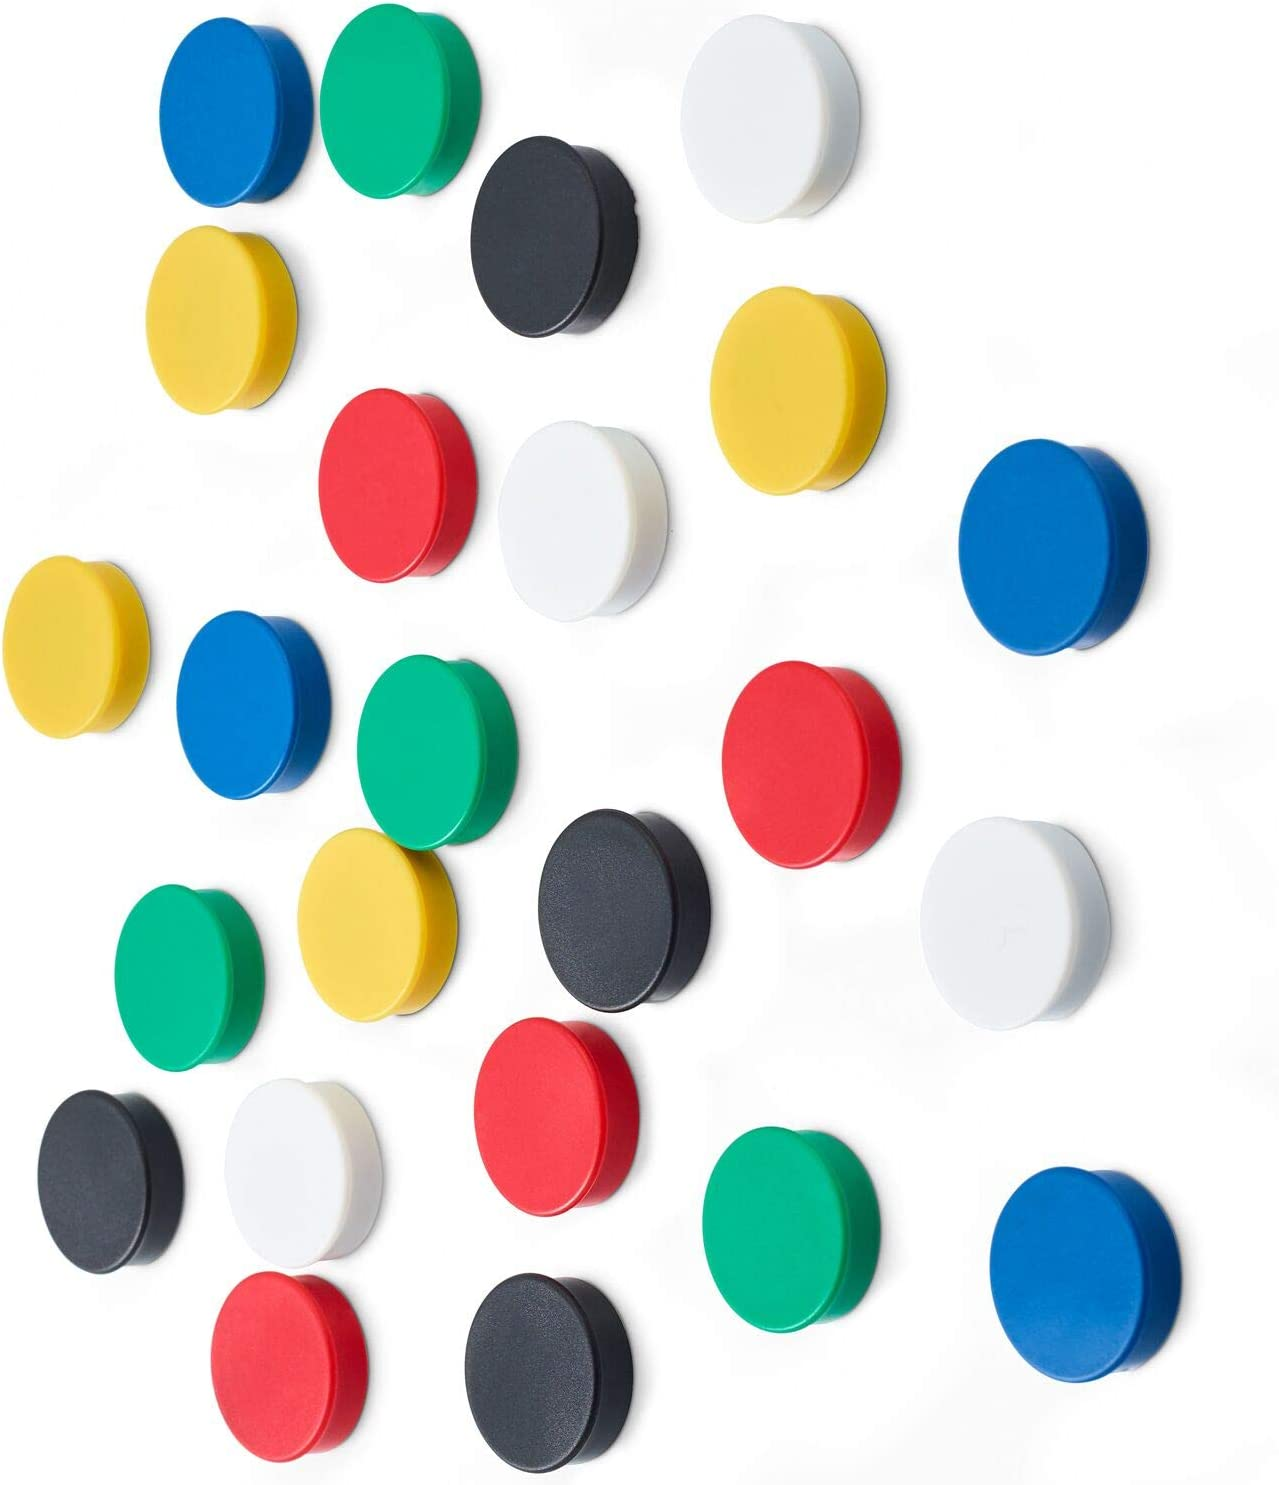 Scribble 1 Inch Office Magnets (24 Pack), Colorful Round Refrigerator Magnets, Perfect for Whiteboards, Lockers & Fridge. Assorted Colors: Red, Blue, Green, Black, Yellow & White.